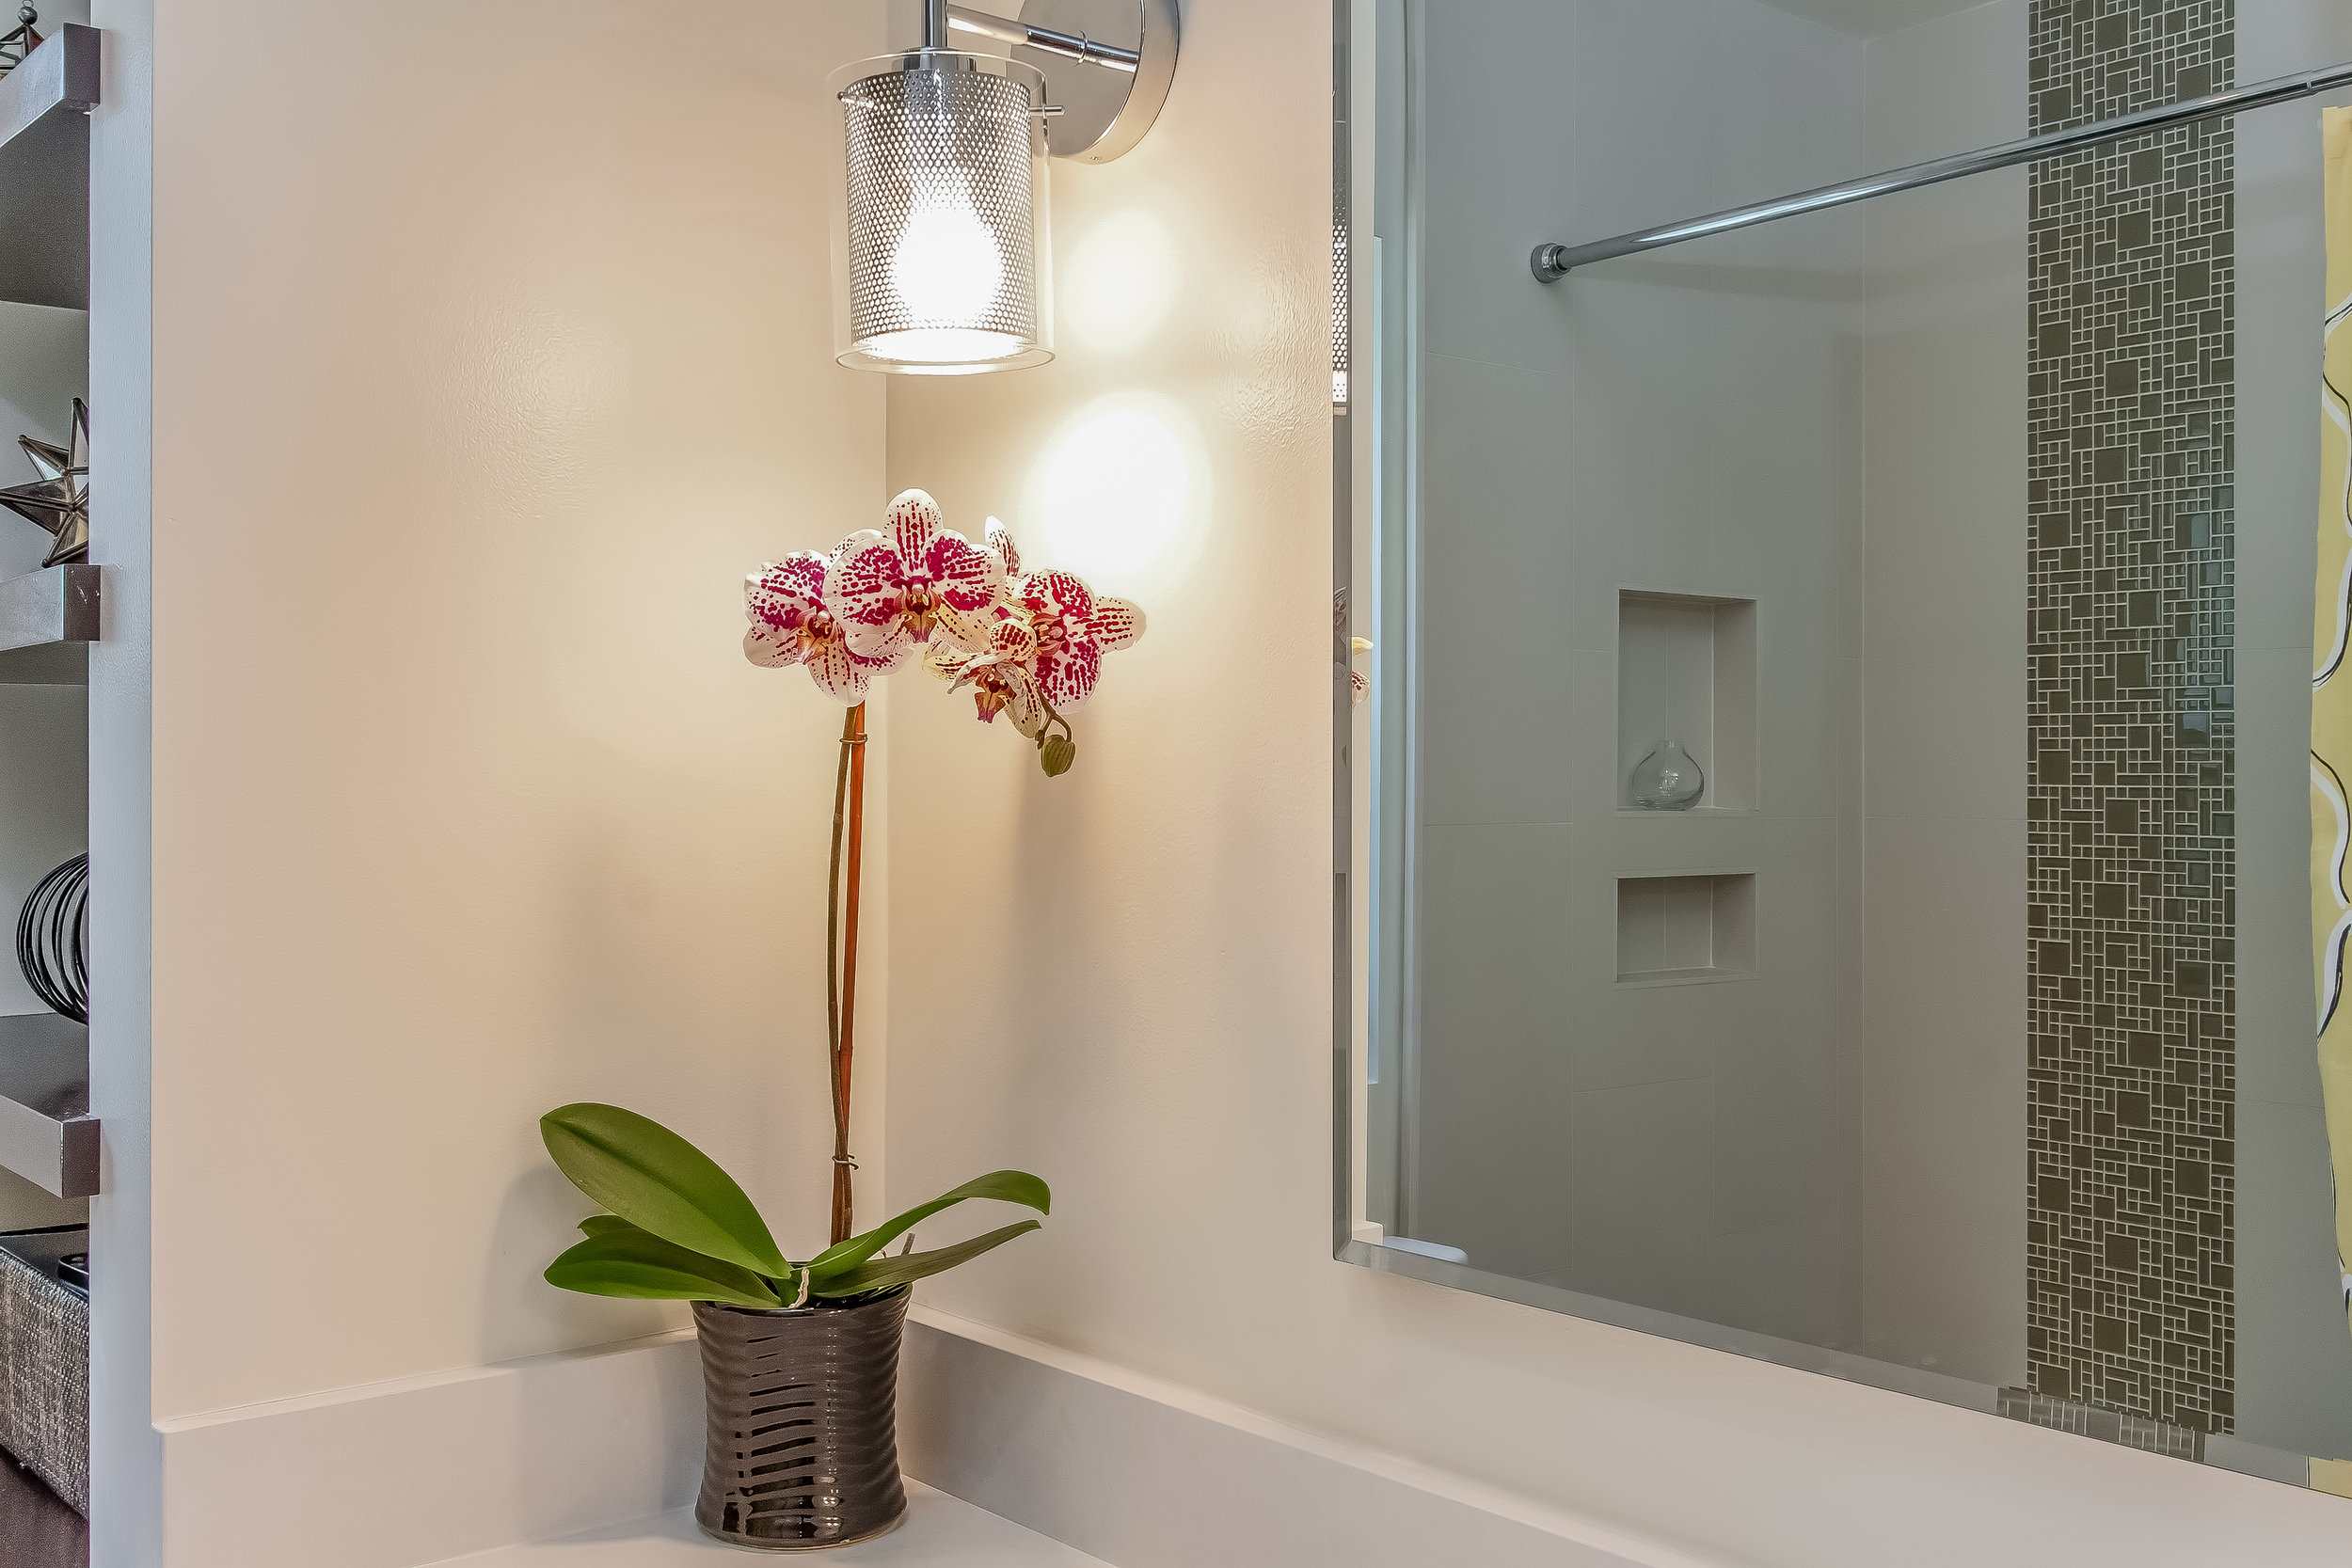 029-Bathroom-1160133-print.jpg